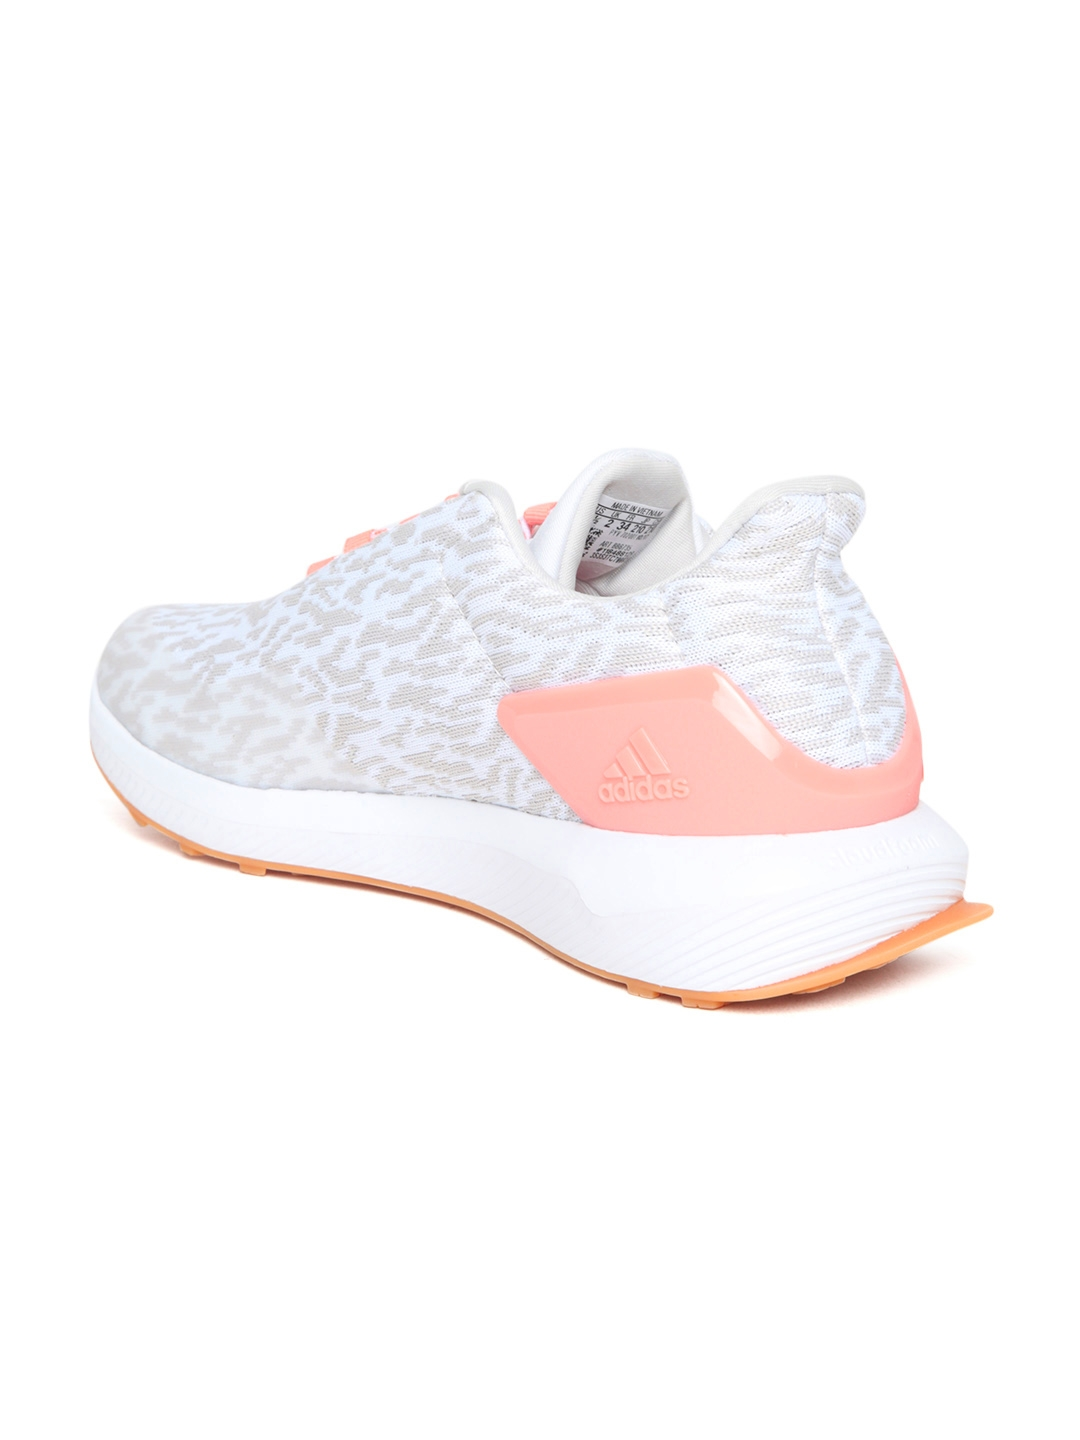 c157cabc37a1e ADIDAS Kids Off-White   Beige RapidArun Uncaged Patterned Running Shoes